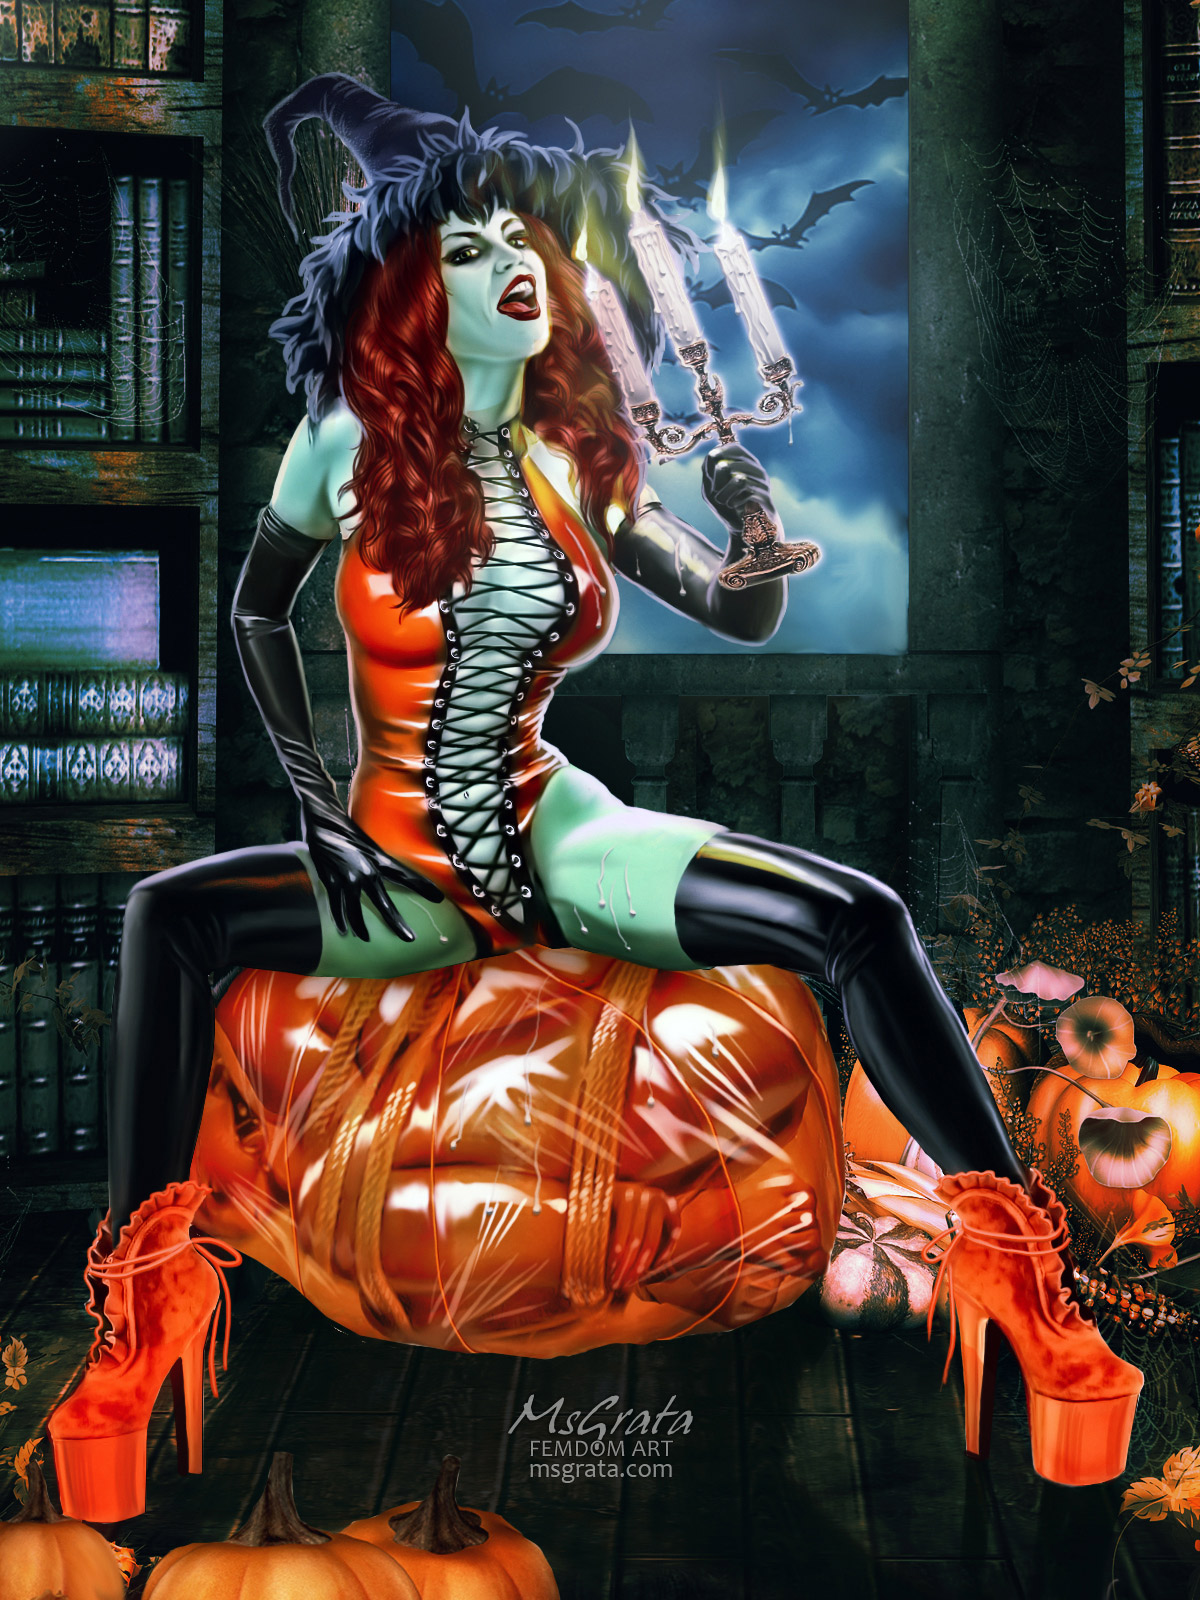 Remarkable Helloween latex witch dungeon bondage femdom art by MsGrata